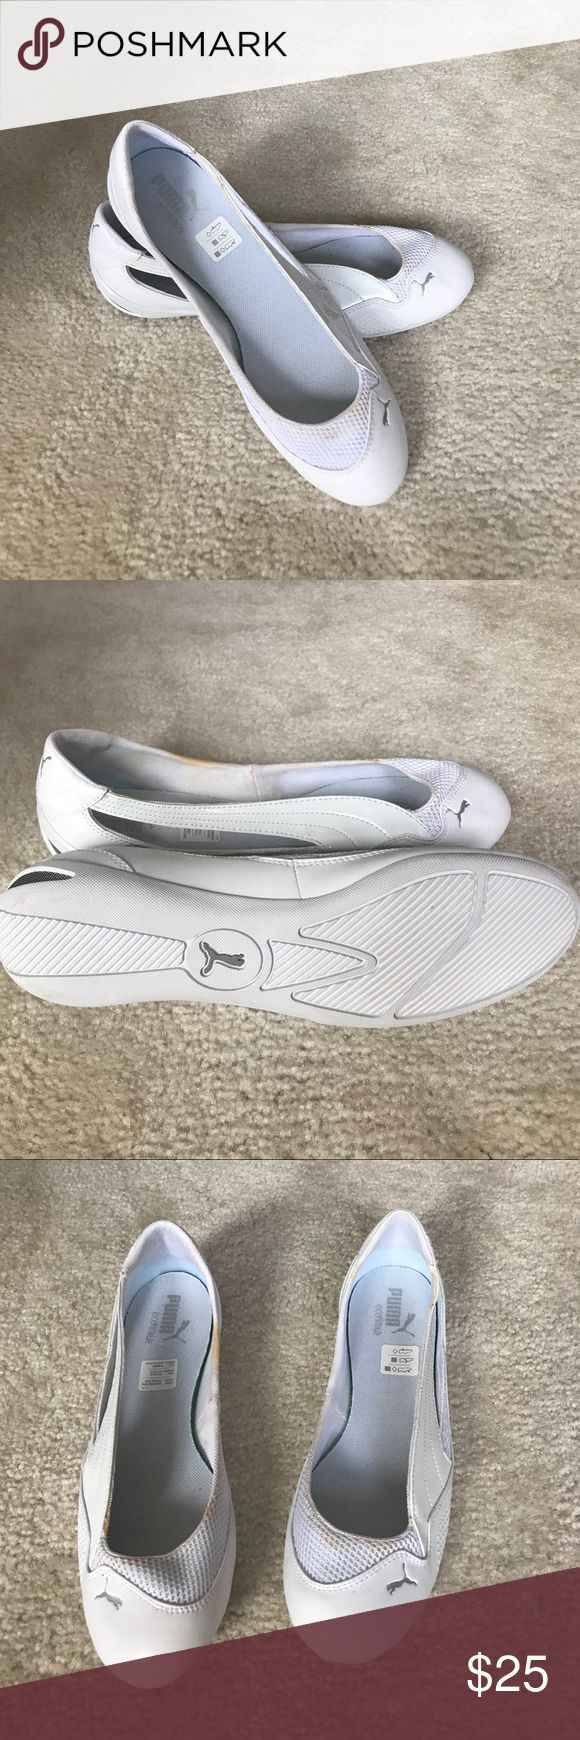 Size 9 women's Puma all white flats Never worn, but now showing small yellow stains around the edge of the shoes (as seen in the pictures).  As the soles show, and the stickers still in the shoe, they have never been worn. Puma Shoes Flats & Loafers